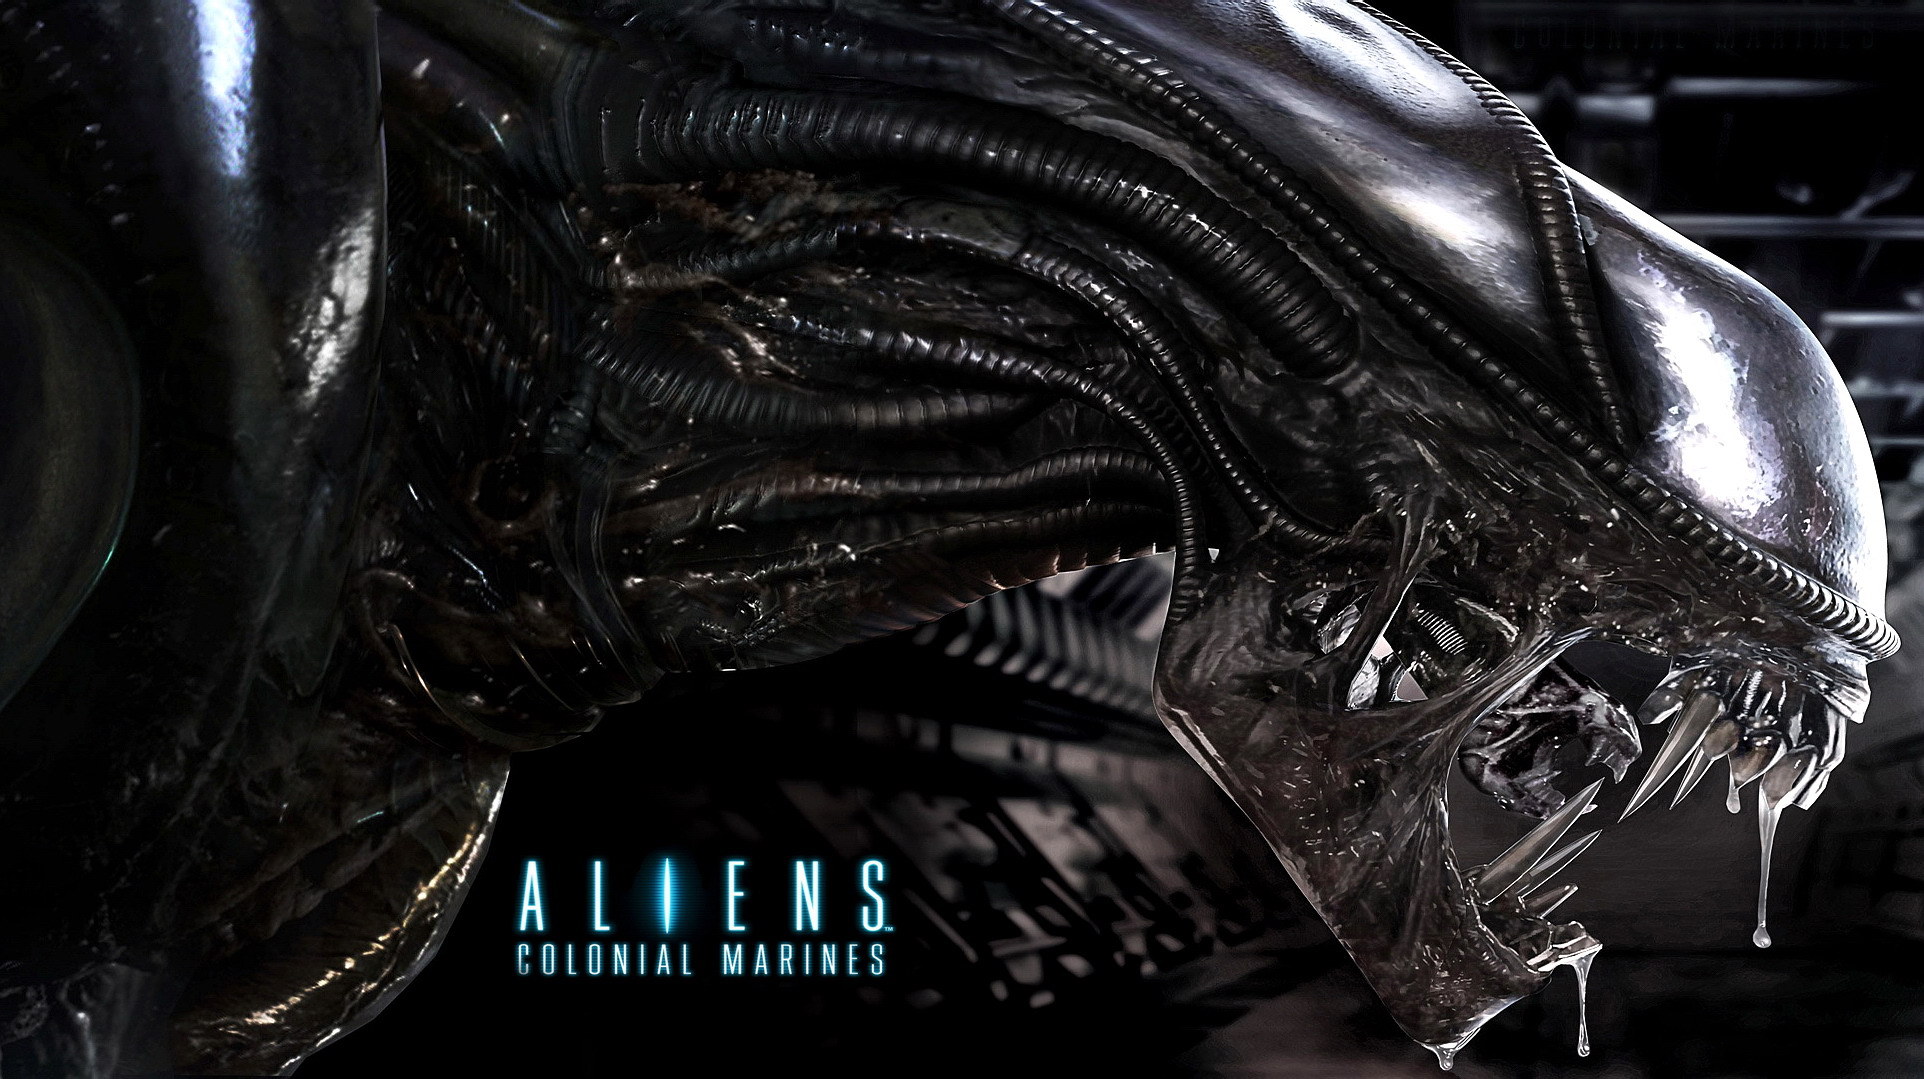 Aliens colonial marines 09022013